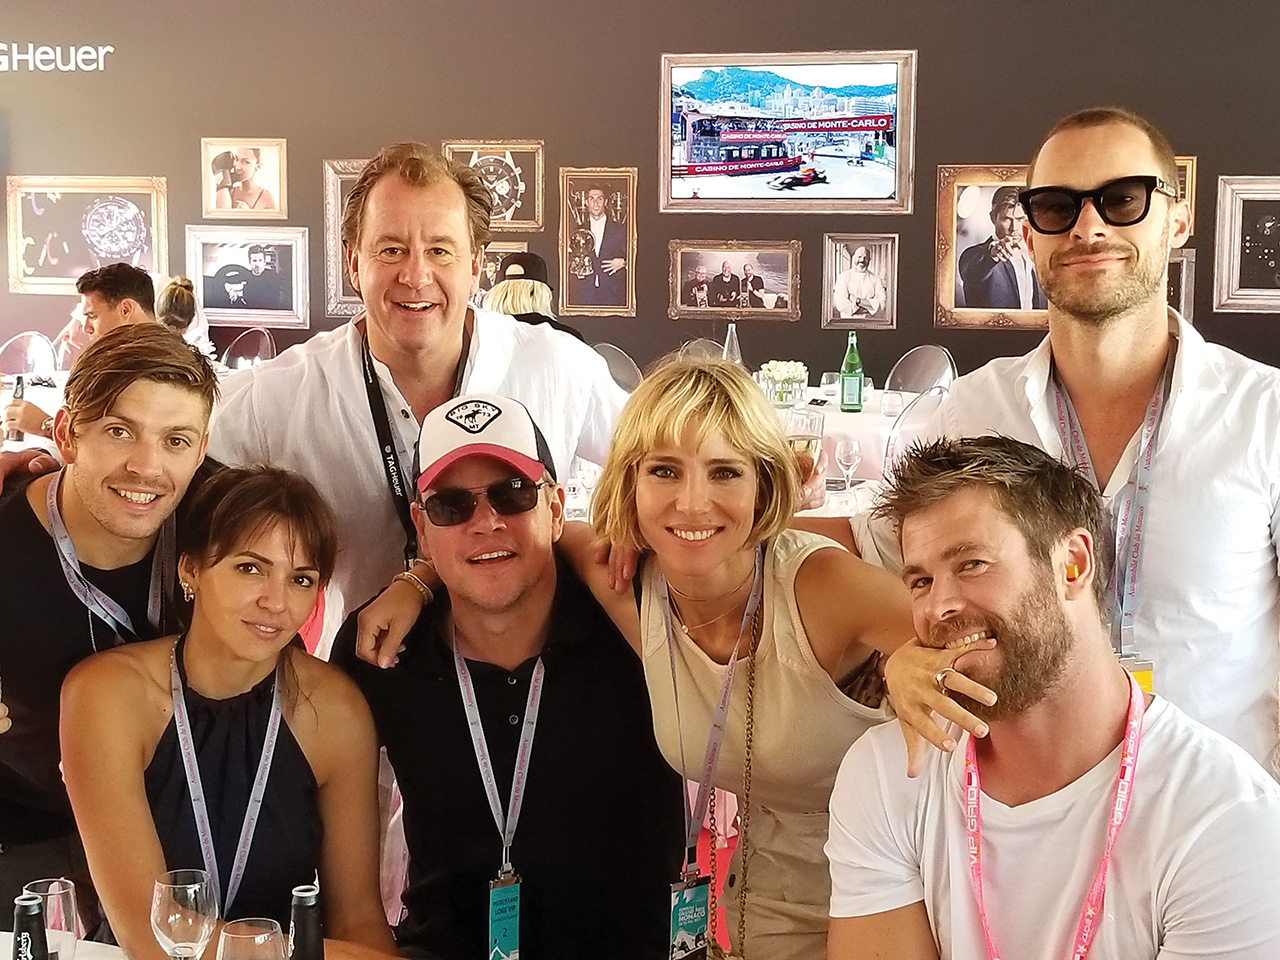 Attending the Monte Carlo Grand Prix with Chris Hemsworth in 2016 (l – r): Luke Zocchi (Hemsworth's trainer and good friend), Lucy Damon, Ward, Matt Damon, Elsa Pataky (Hemsworth's wife), Hemsworth and Aaron Grist (Hemsworth's assistant and good friend).